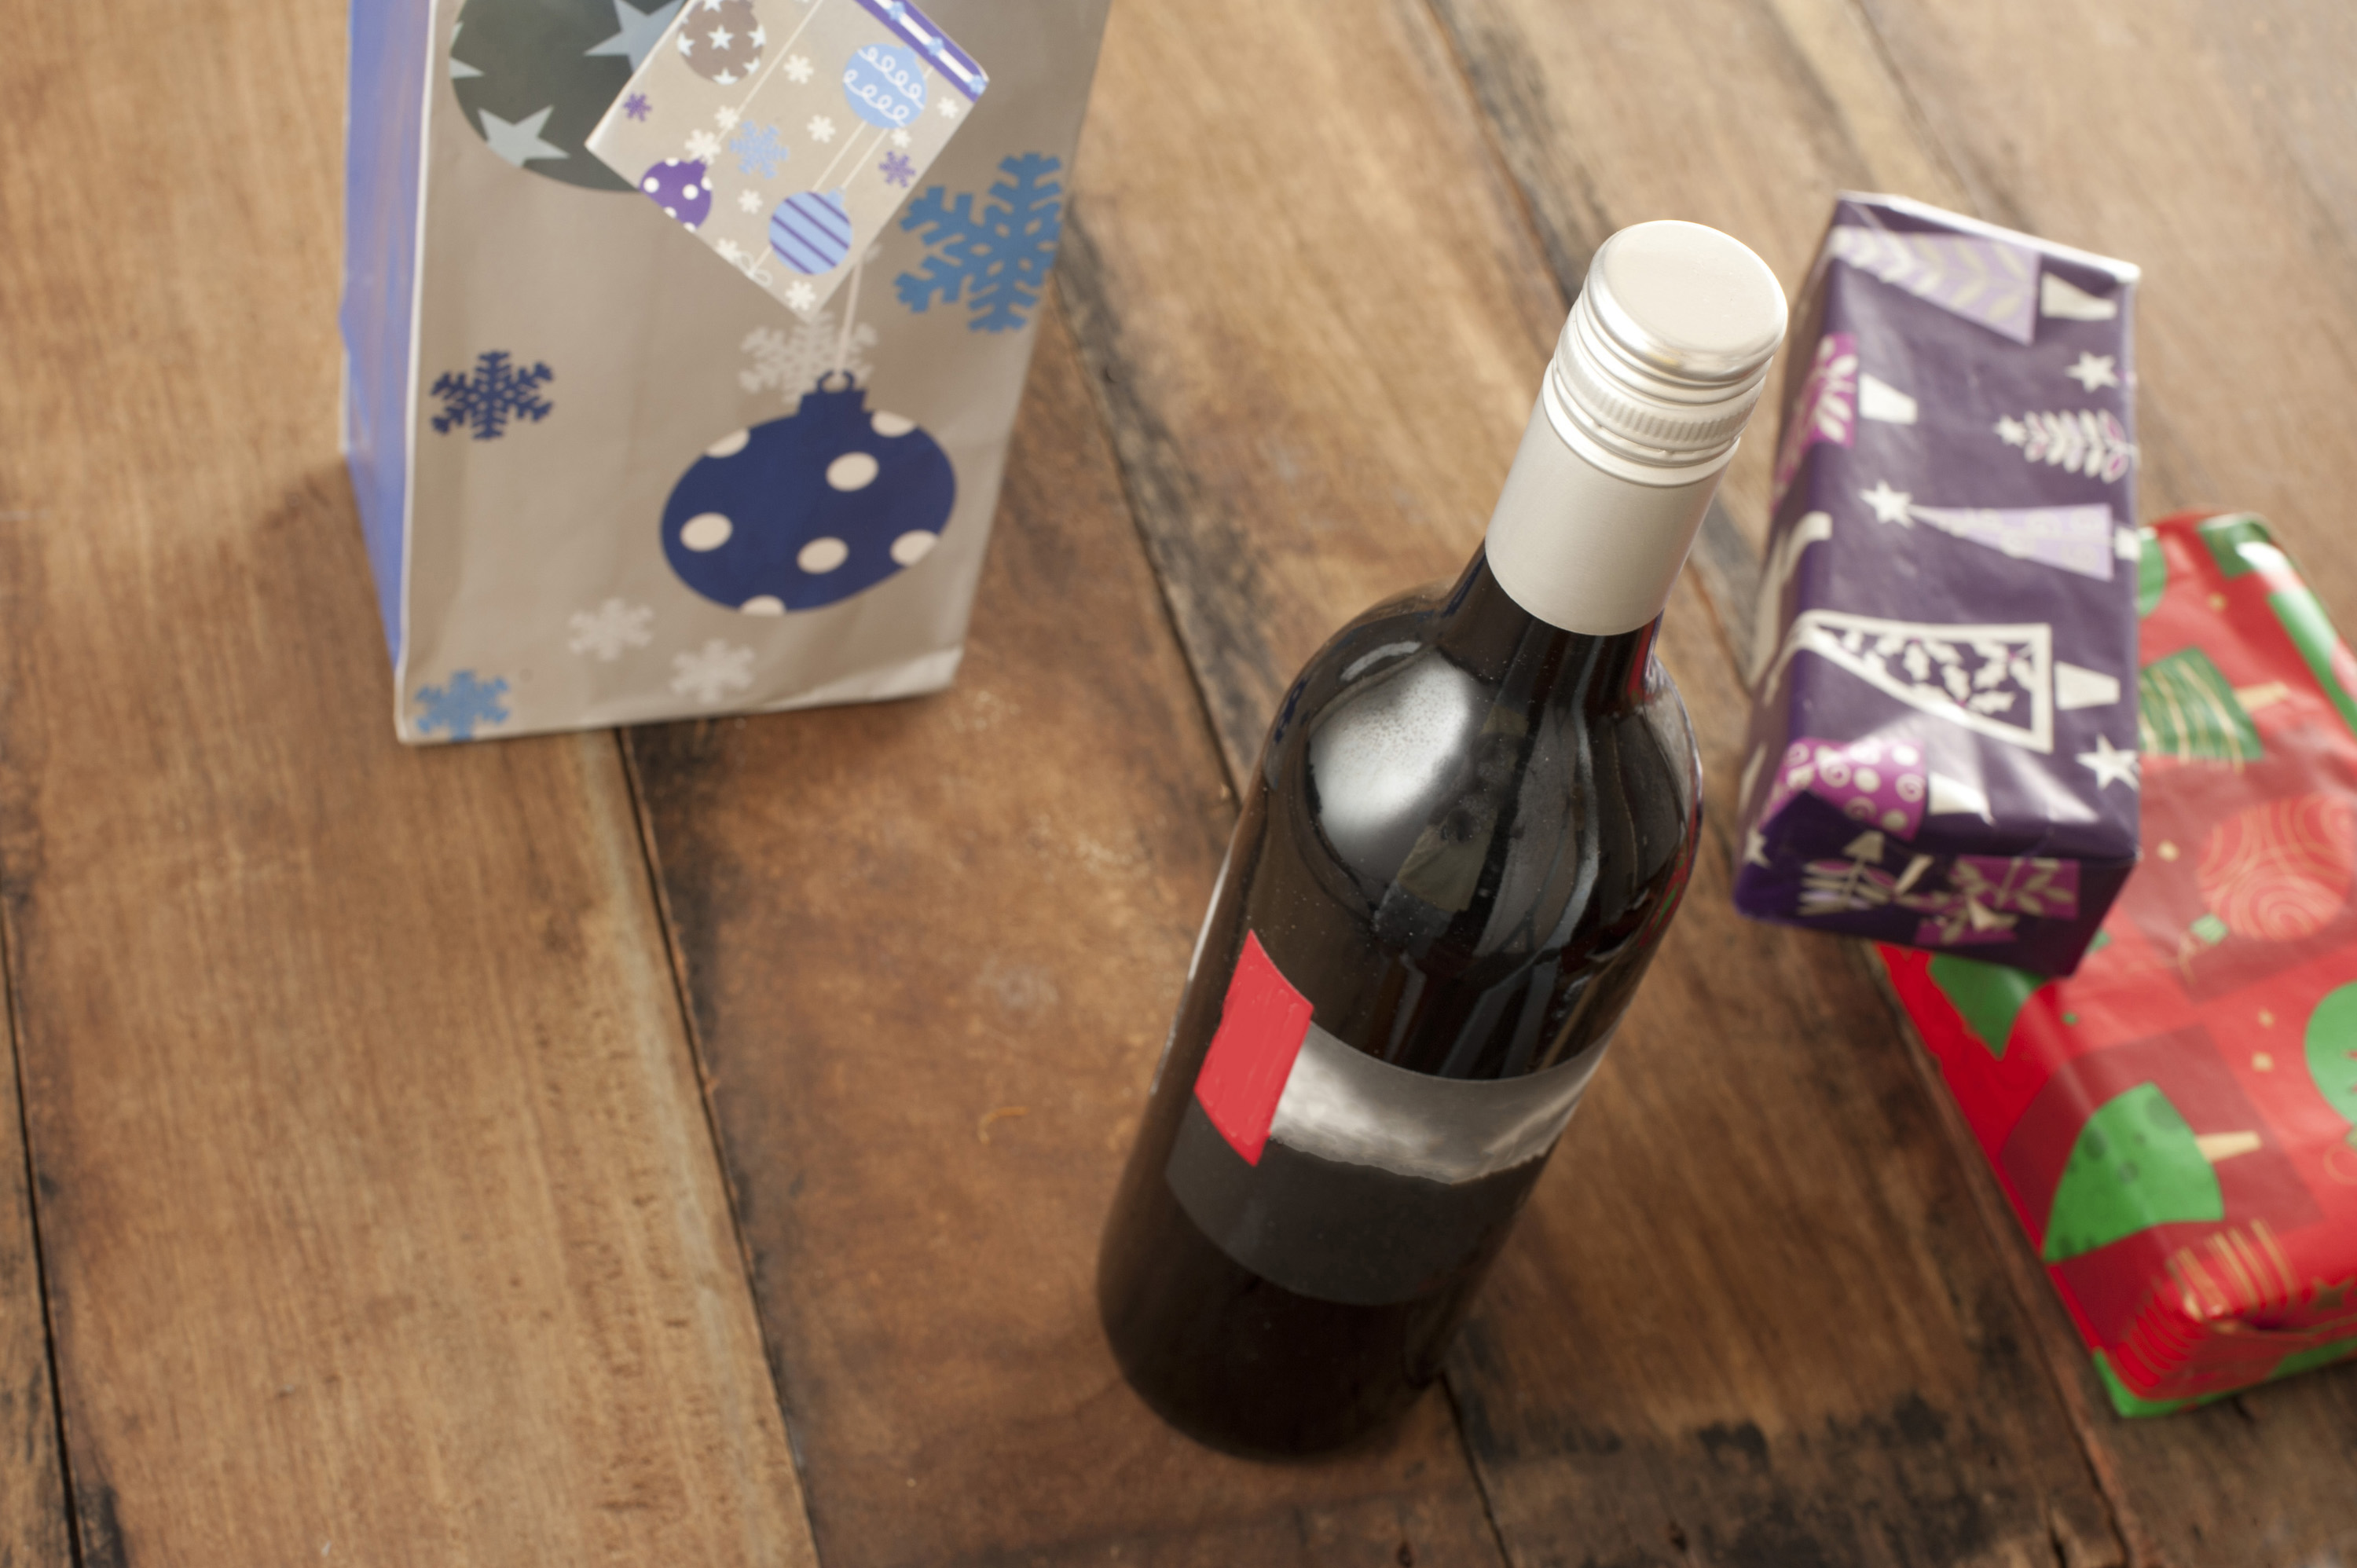 A bottle of wine standing beside some xmas presents on a wooden table